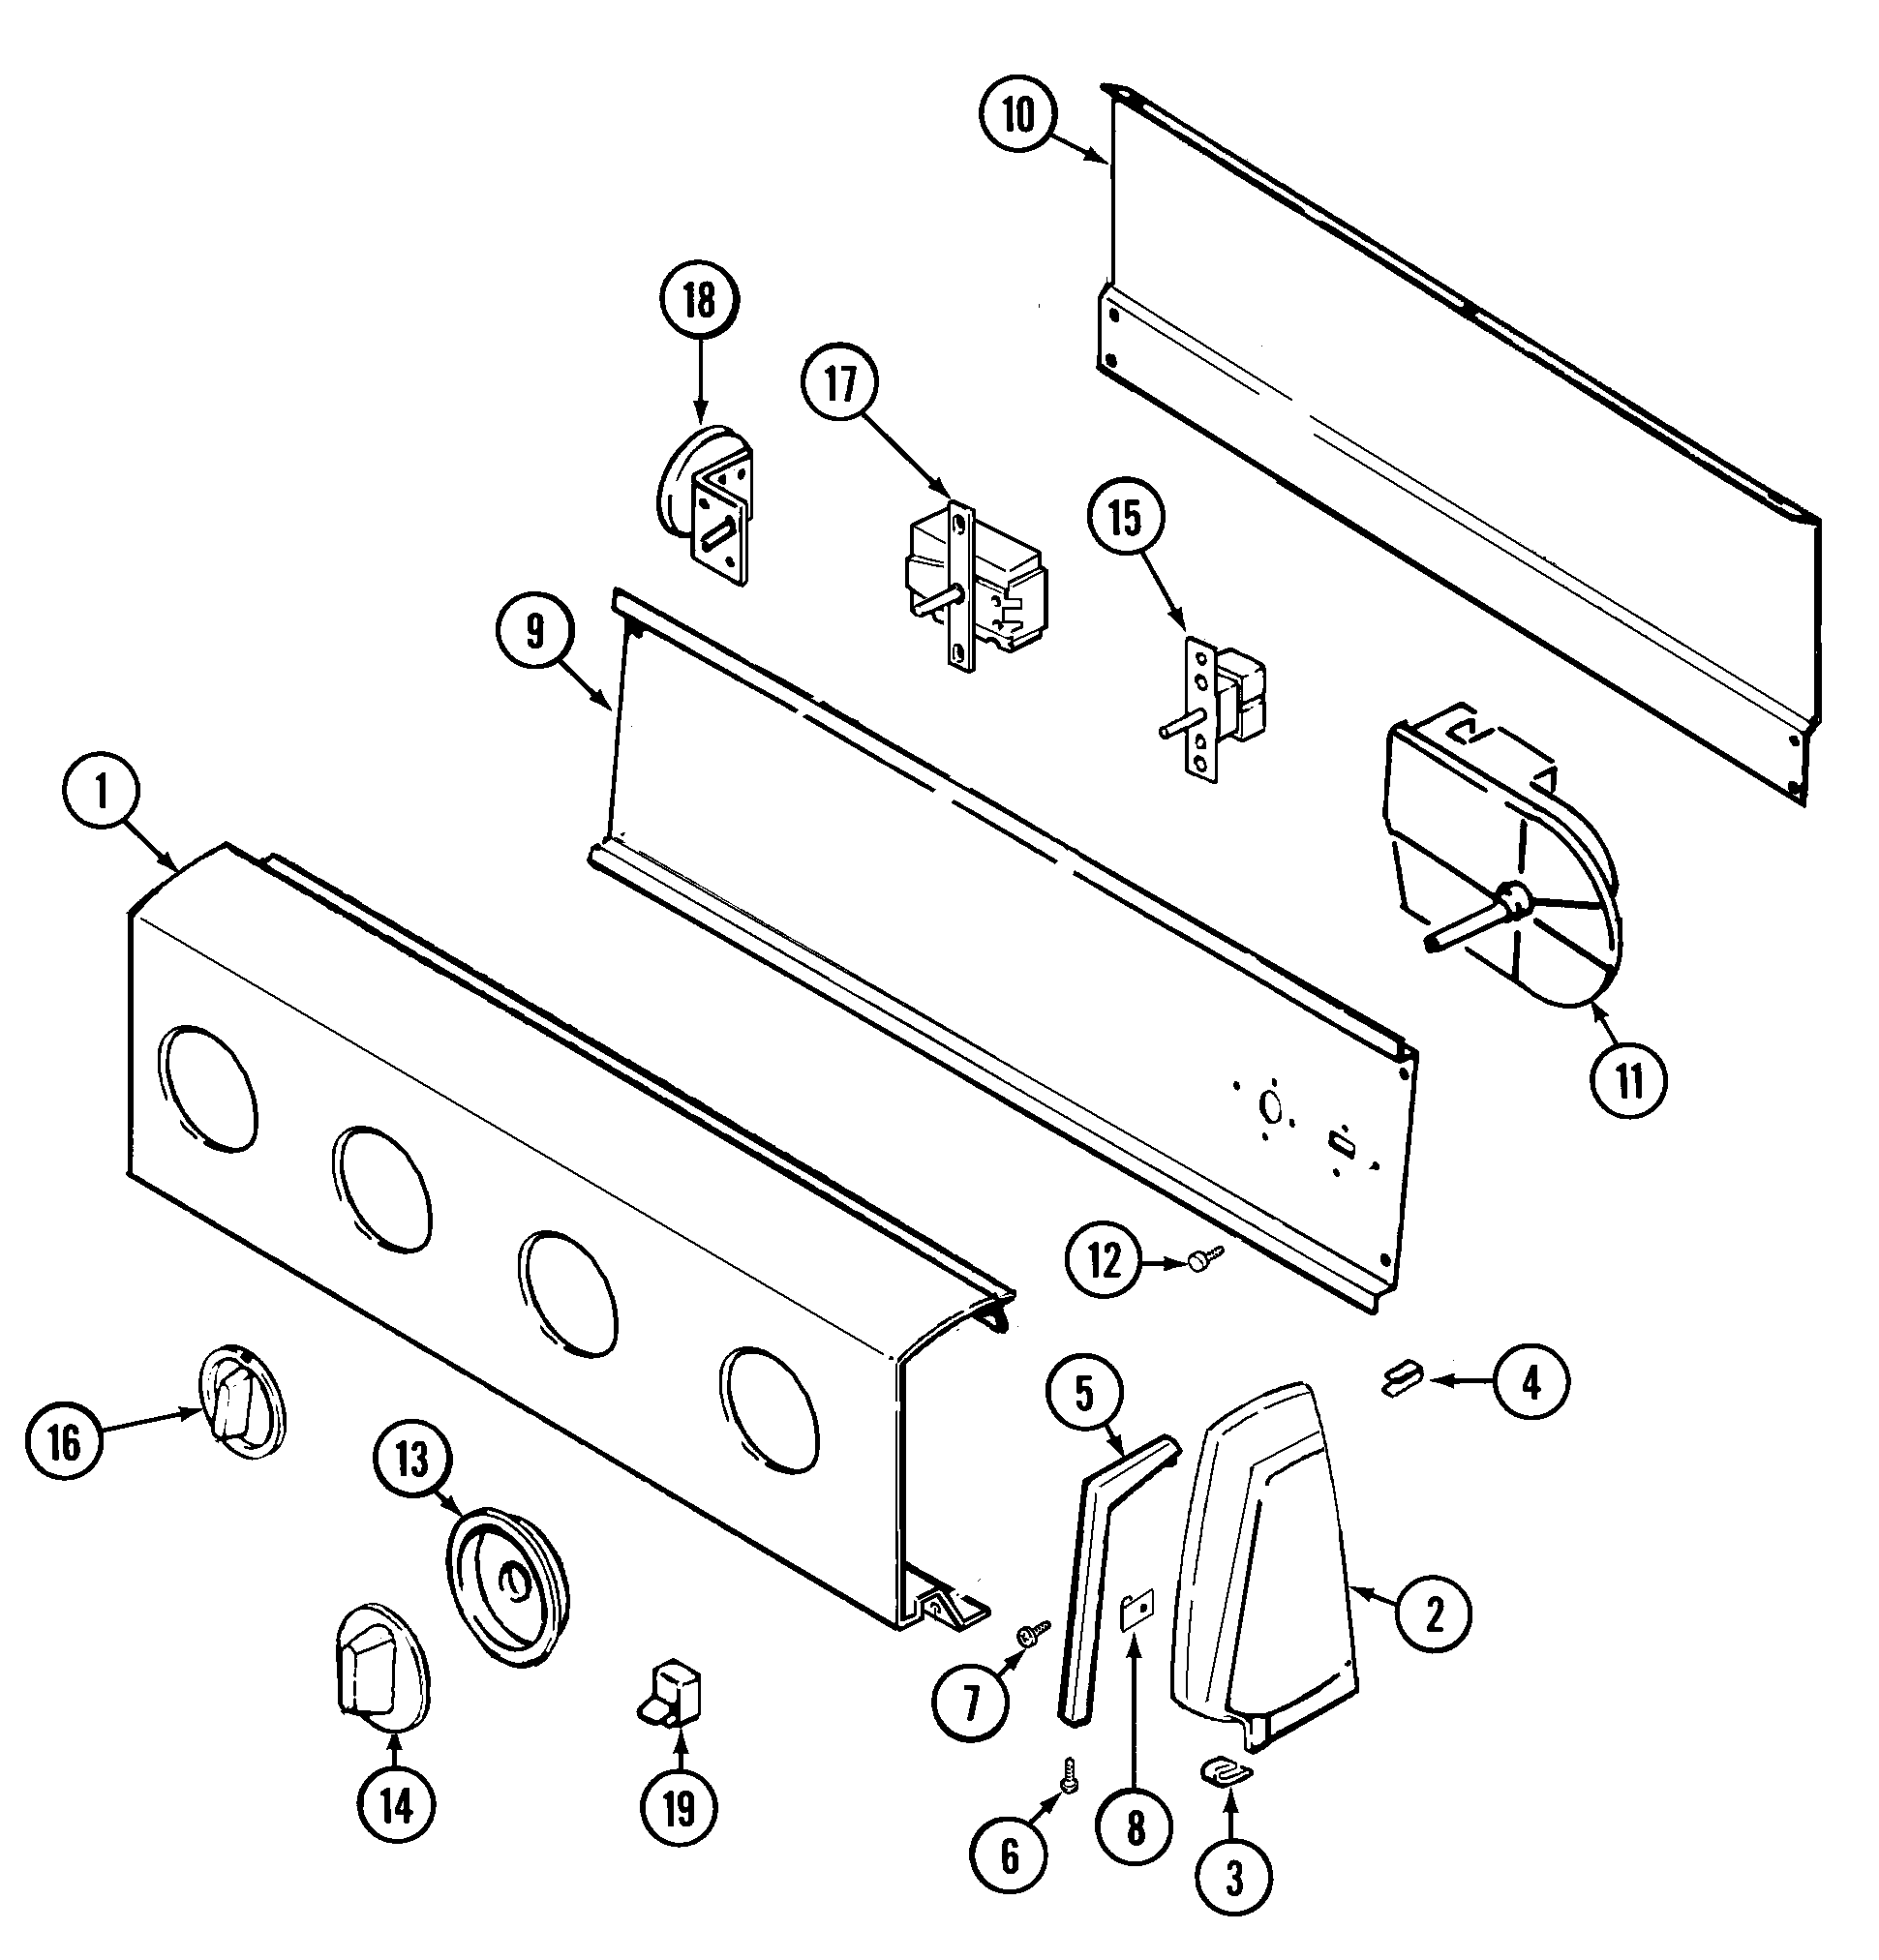 hight resolution of pav2000aww washer control panel parts diagram